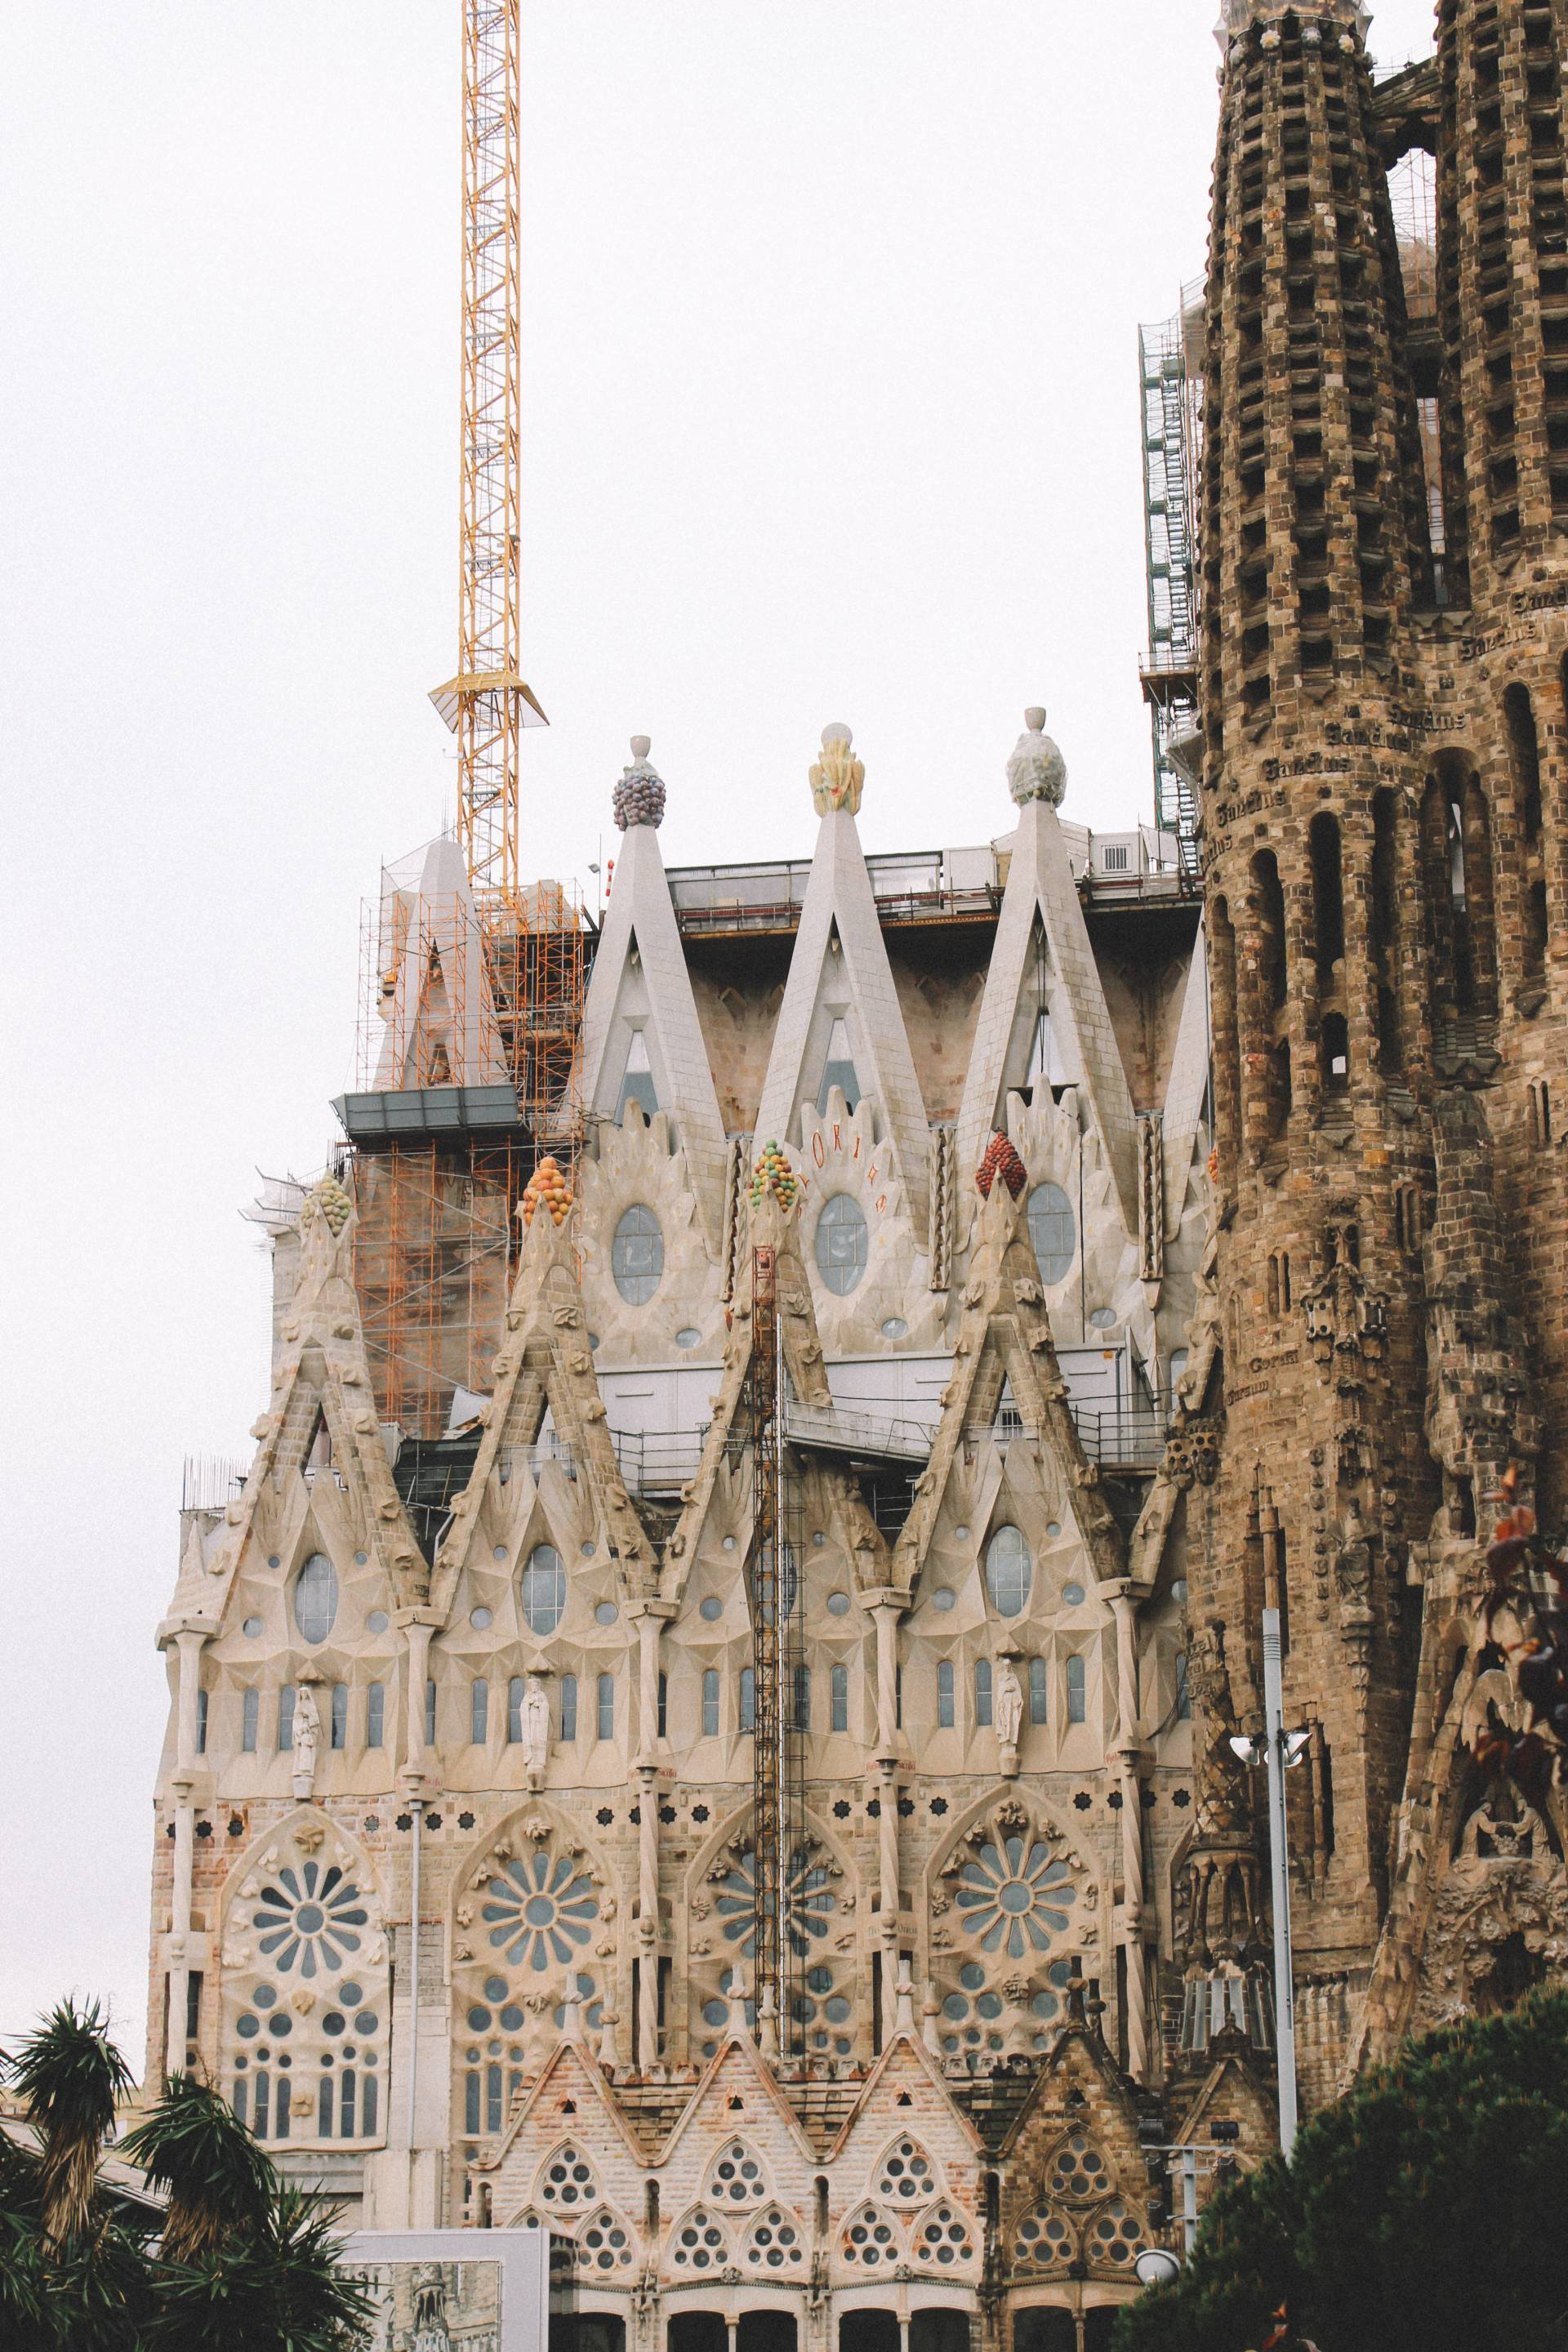 Part of the Sagrada Familia by Antoni Gaudi in Barcelona, Spain